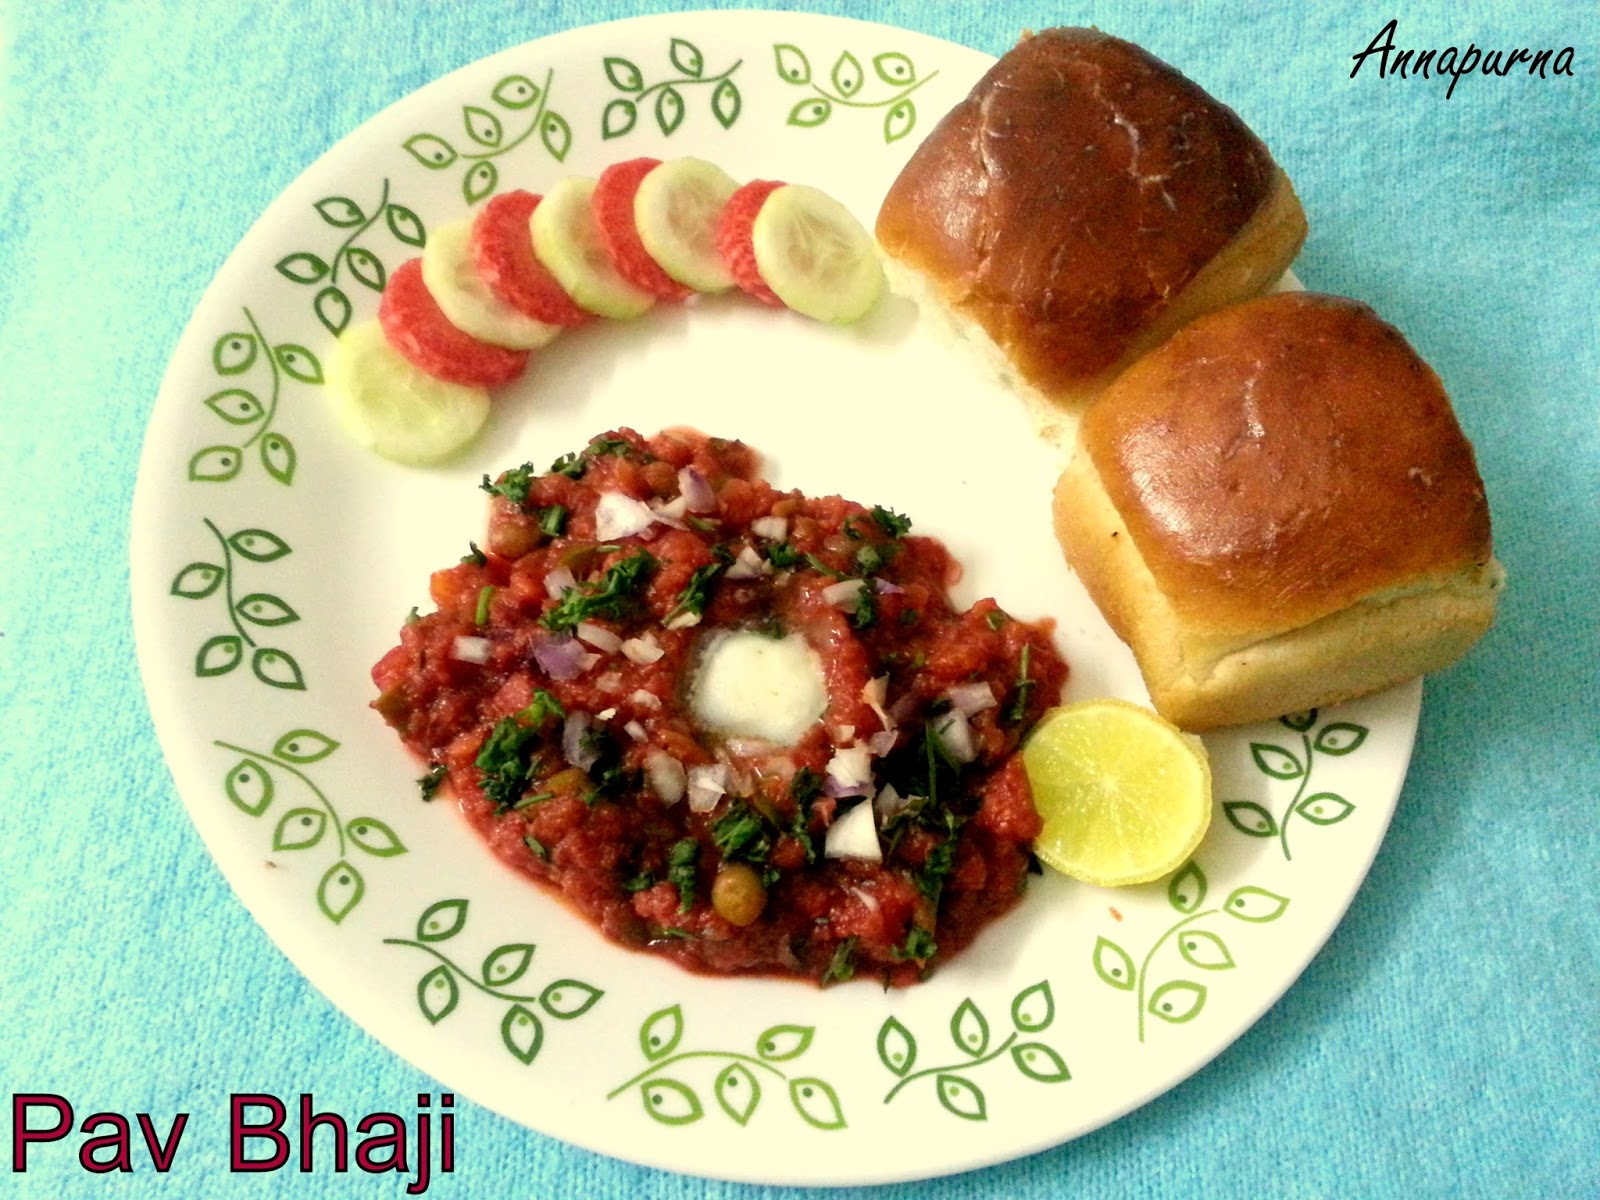 Annapurna mumbai pav bhaji recipe indian street food recipes mumbai pav bhaji recipe indian street food recipes forumfinder Images